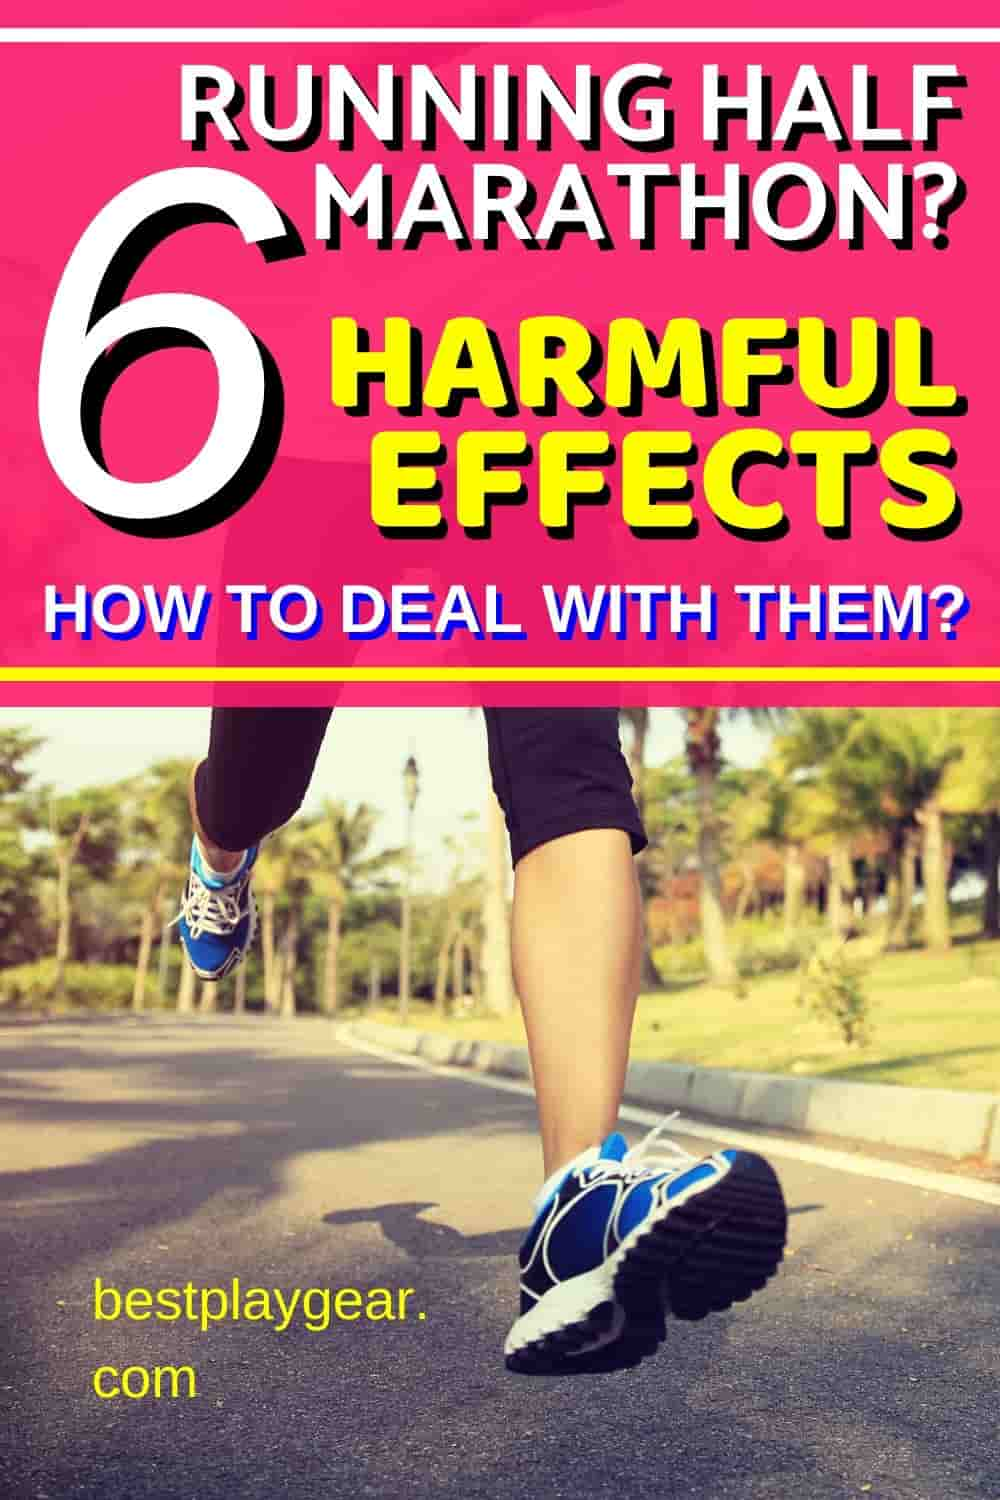 Running Half Marathon? Before that find out these harmful effects of half marathon and how to prevent them. Also, you will have other half marathon training tips for better running performance.